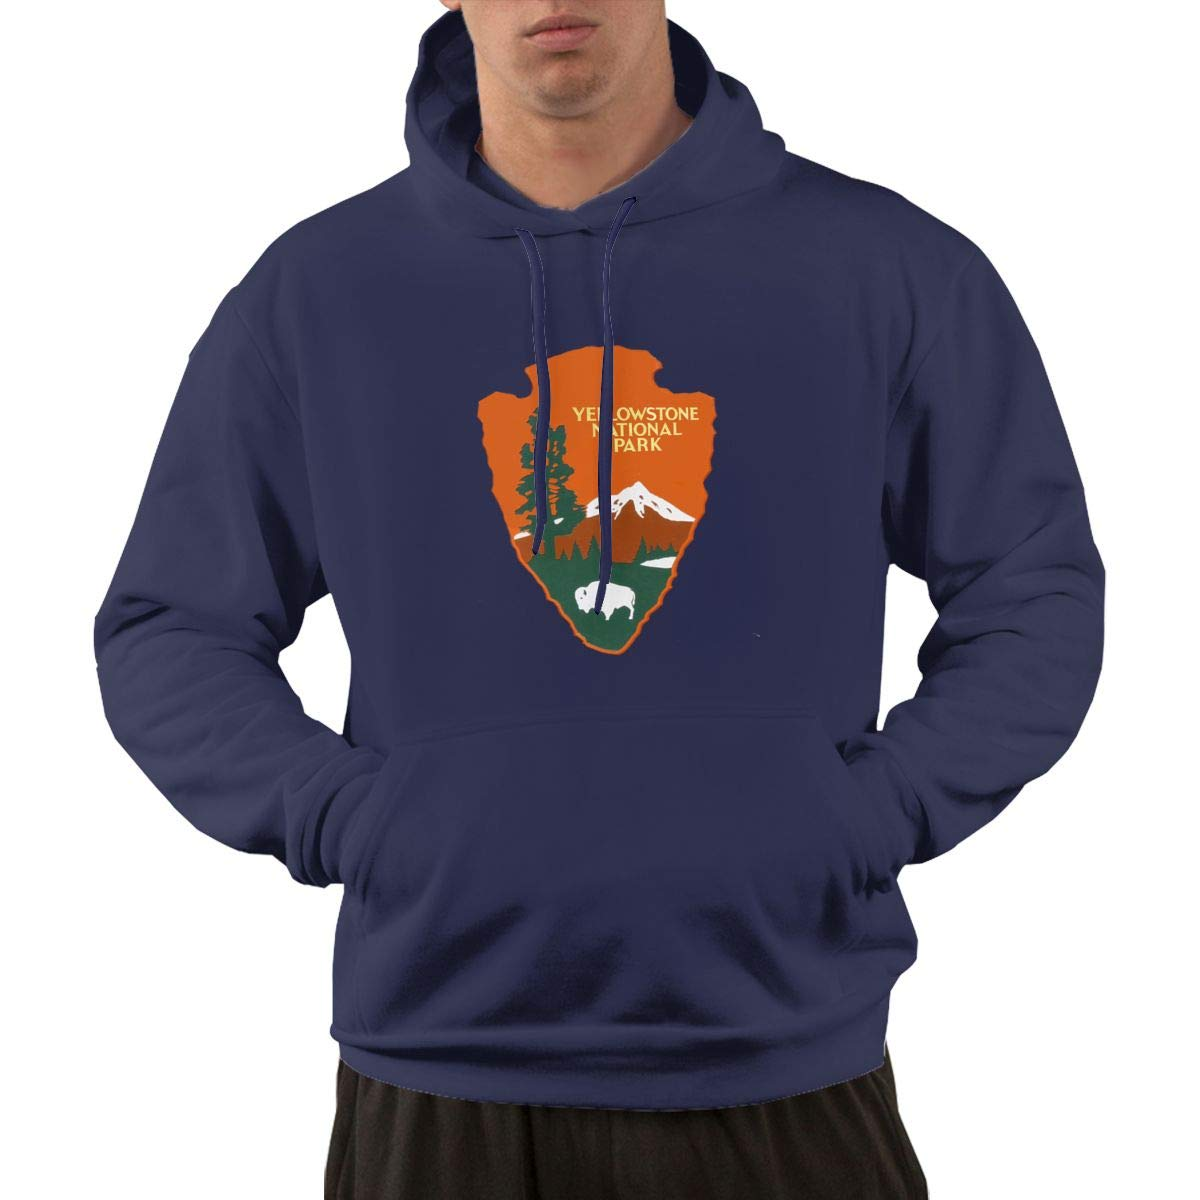 For Funny Travel S Sweater With Yellowstone National Park Pattern Shirts